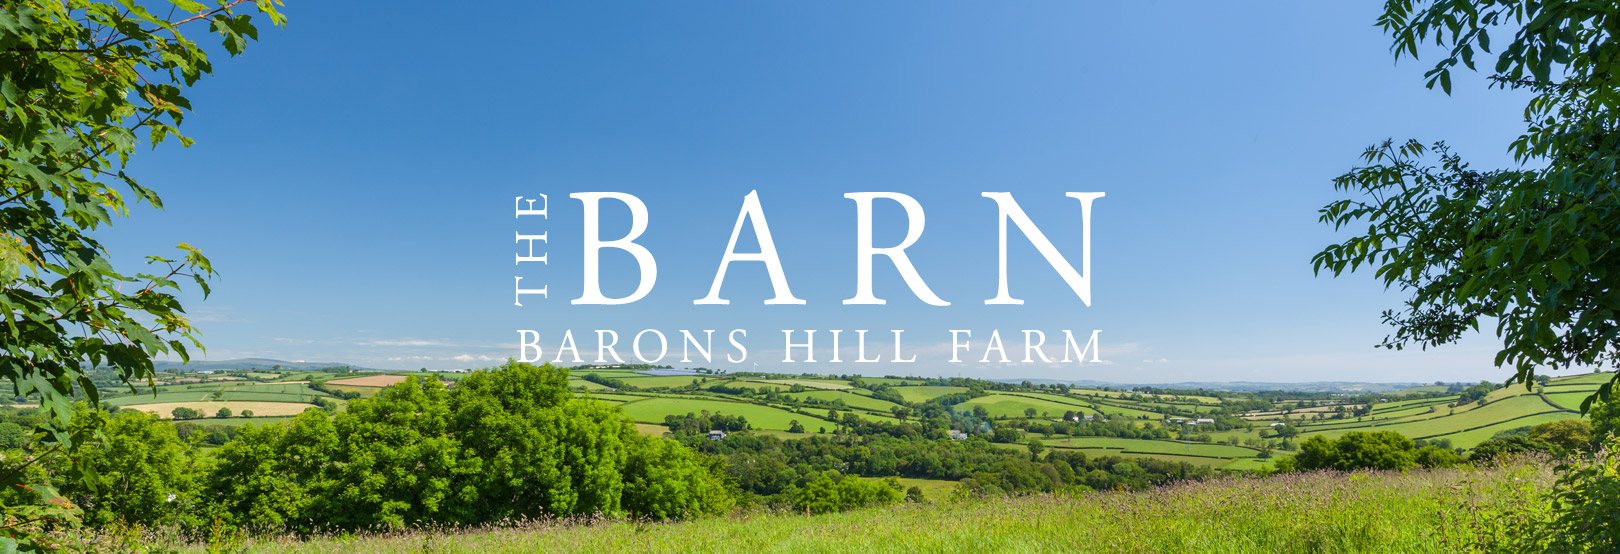 barn-barons-hill-2